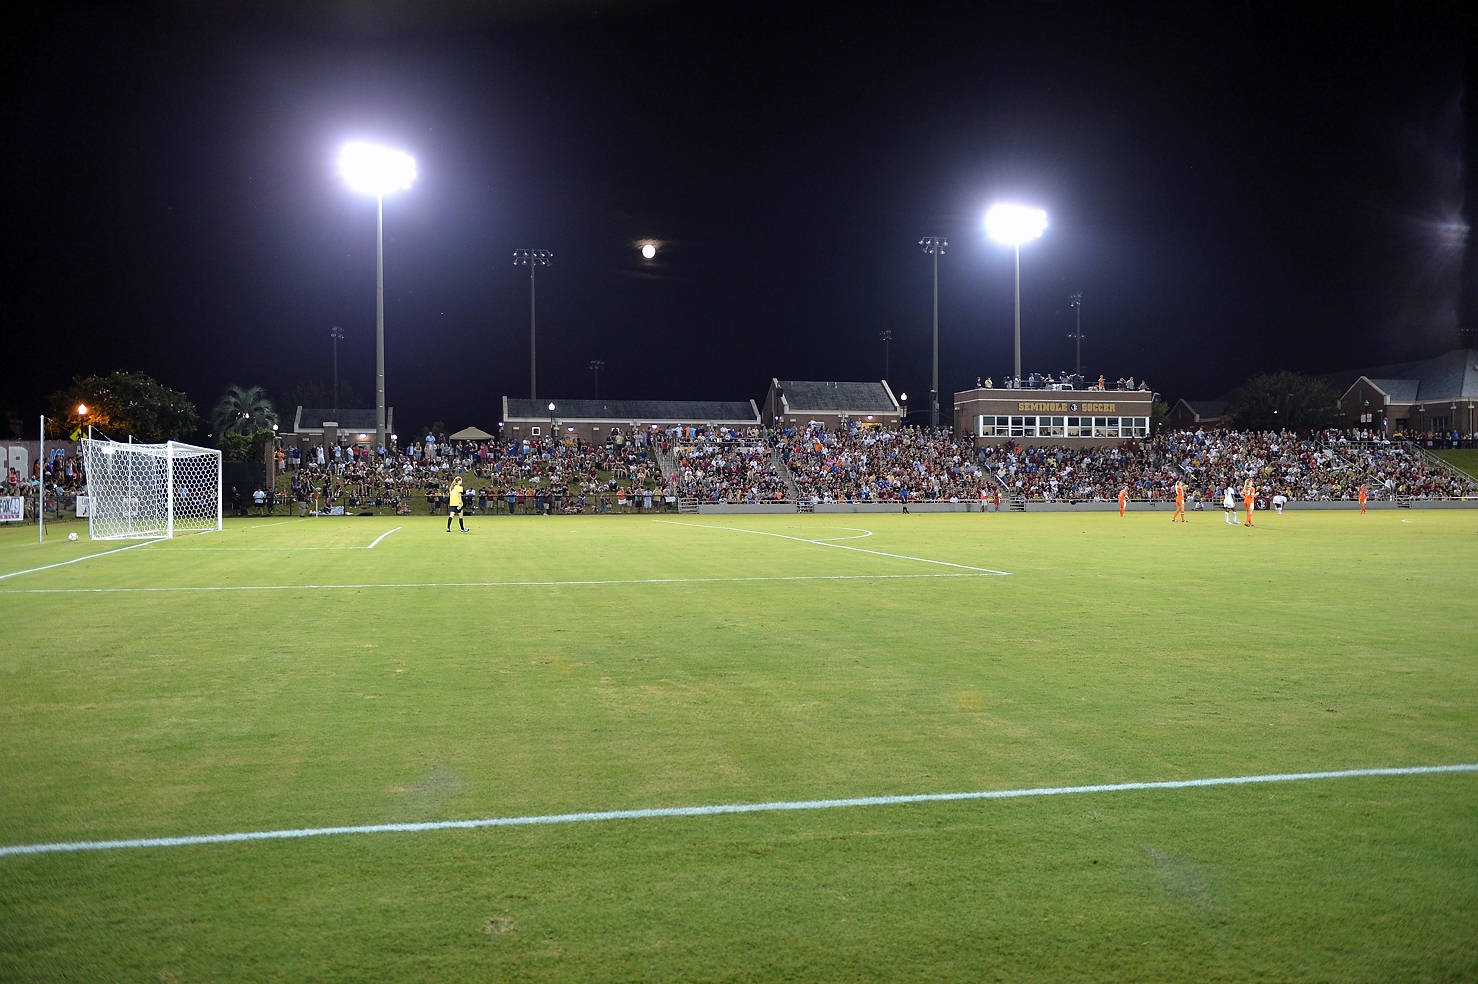 Another look at the sell out crowd inside the Seminole Soccer Complex Friday night.